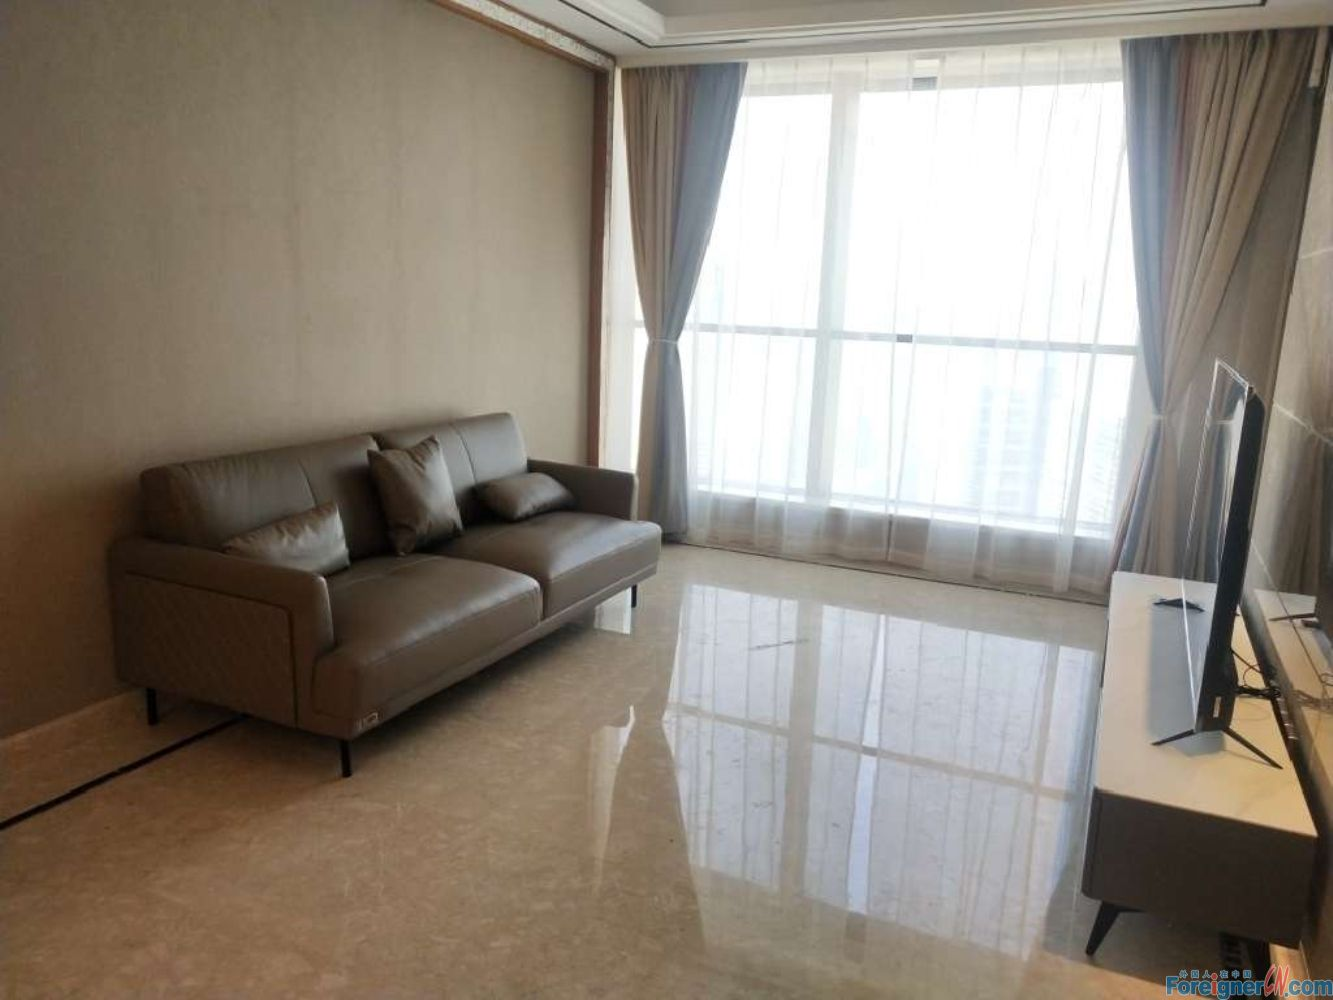 Where to live in Suzhou–first rent-central AC–oven-lots of light-heated floor–new furniture-cozy and neat-high floor